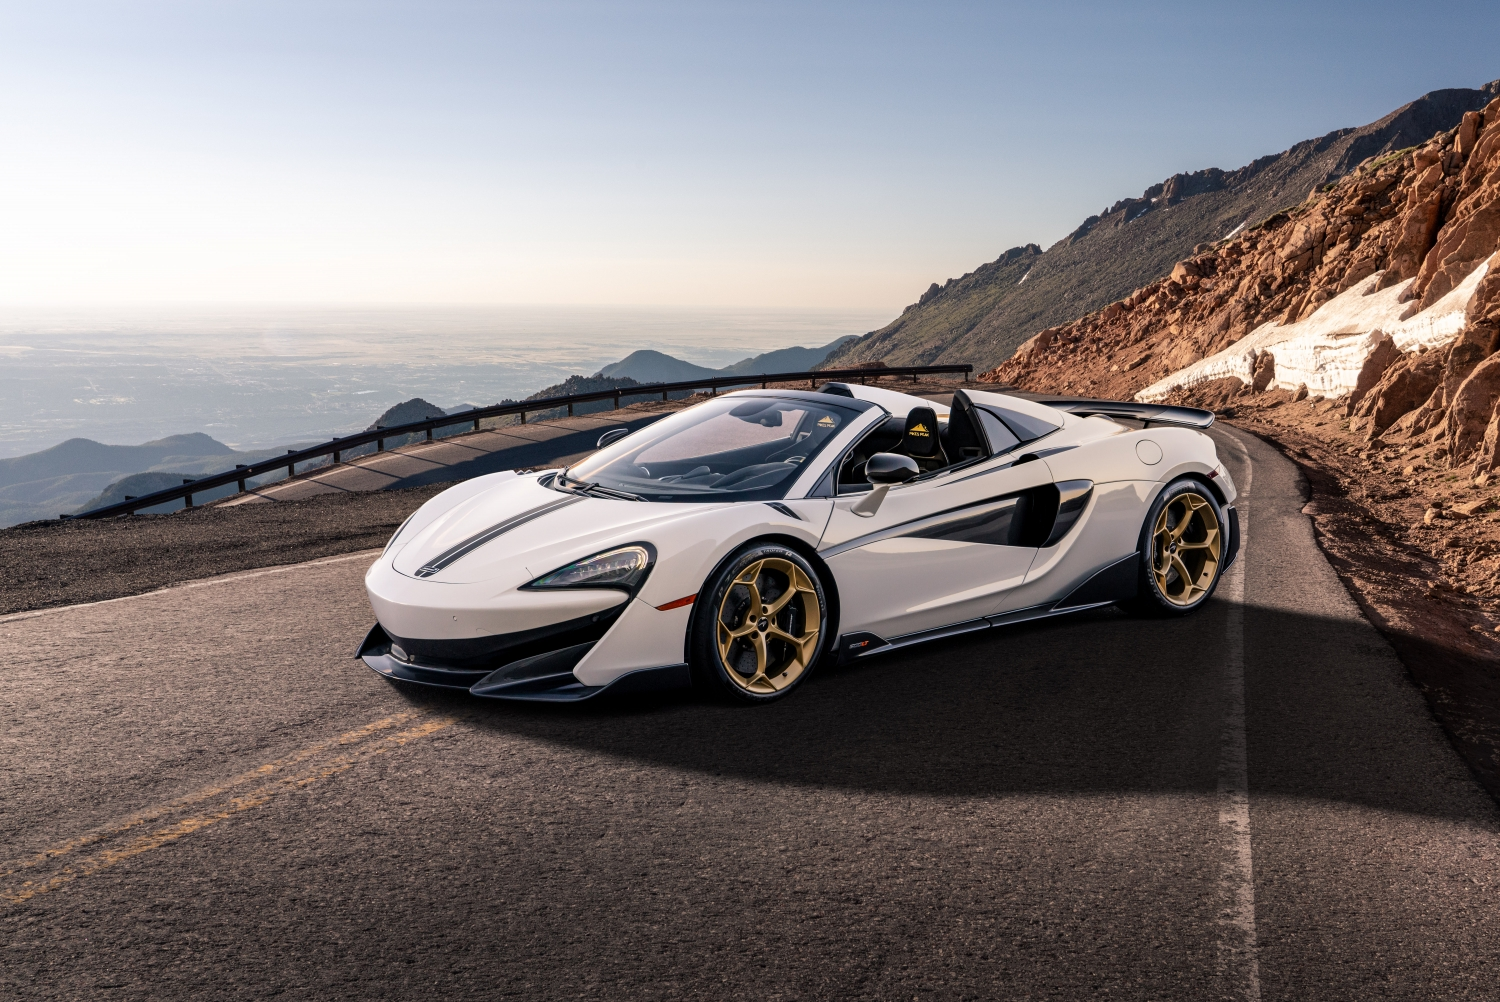 Six 'Pikes Peak Collection' of 600LT Spiders for McLaren Denver